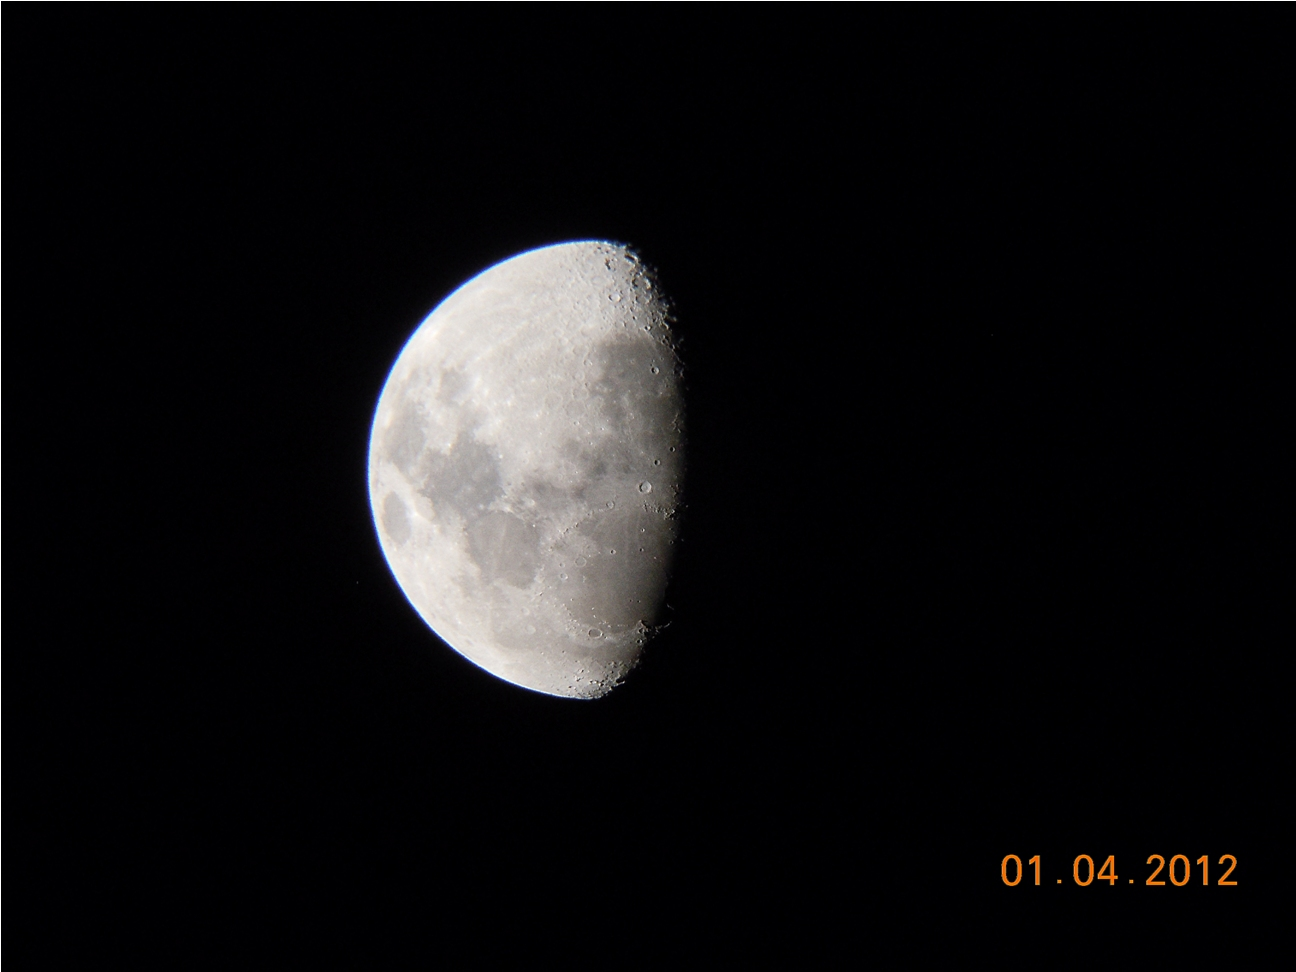 My greatest shot of the moon